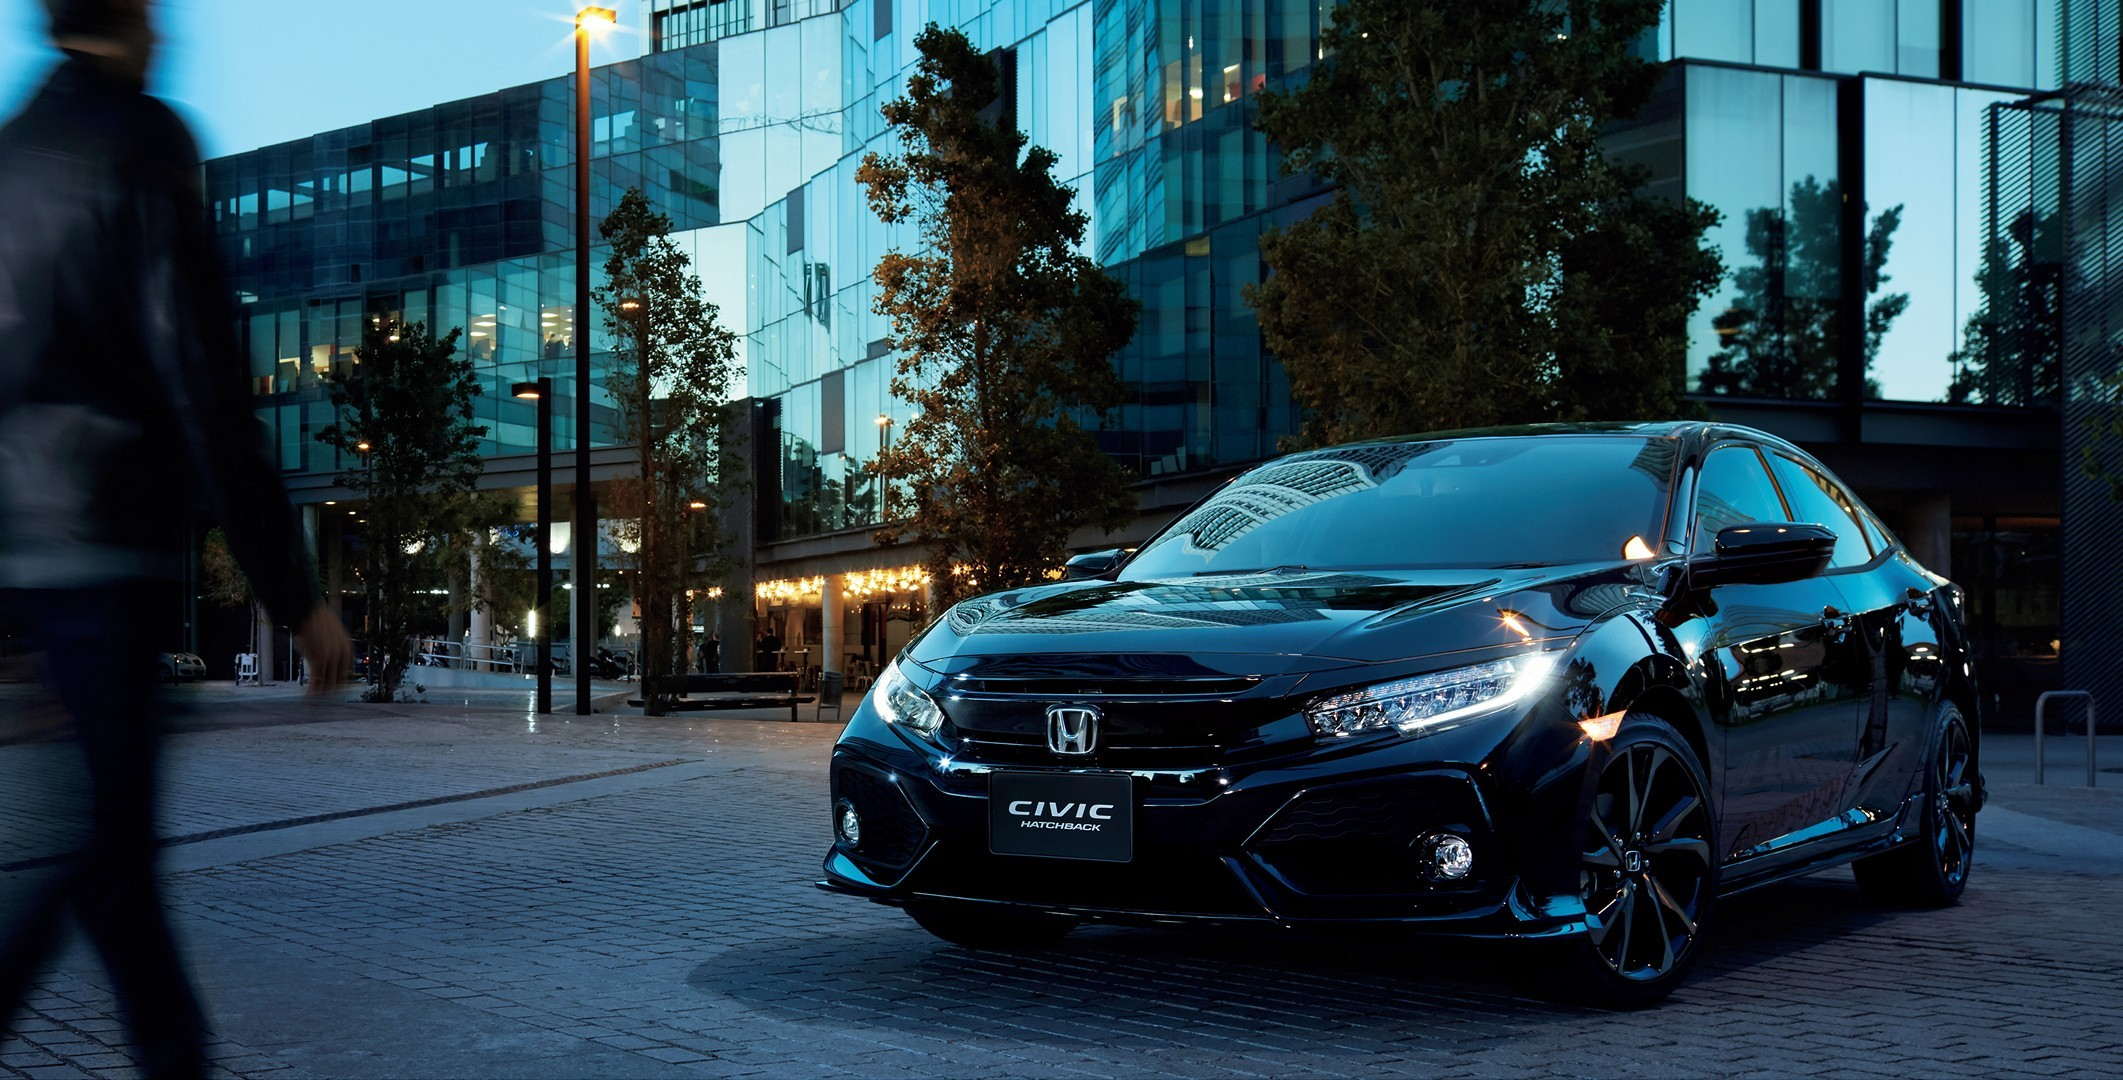 Honda_Civic_Japan_24